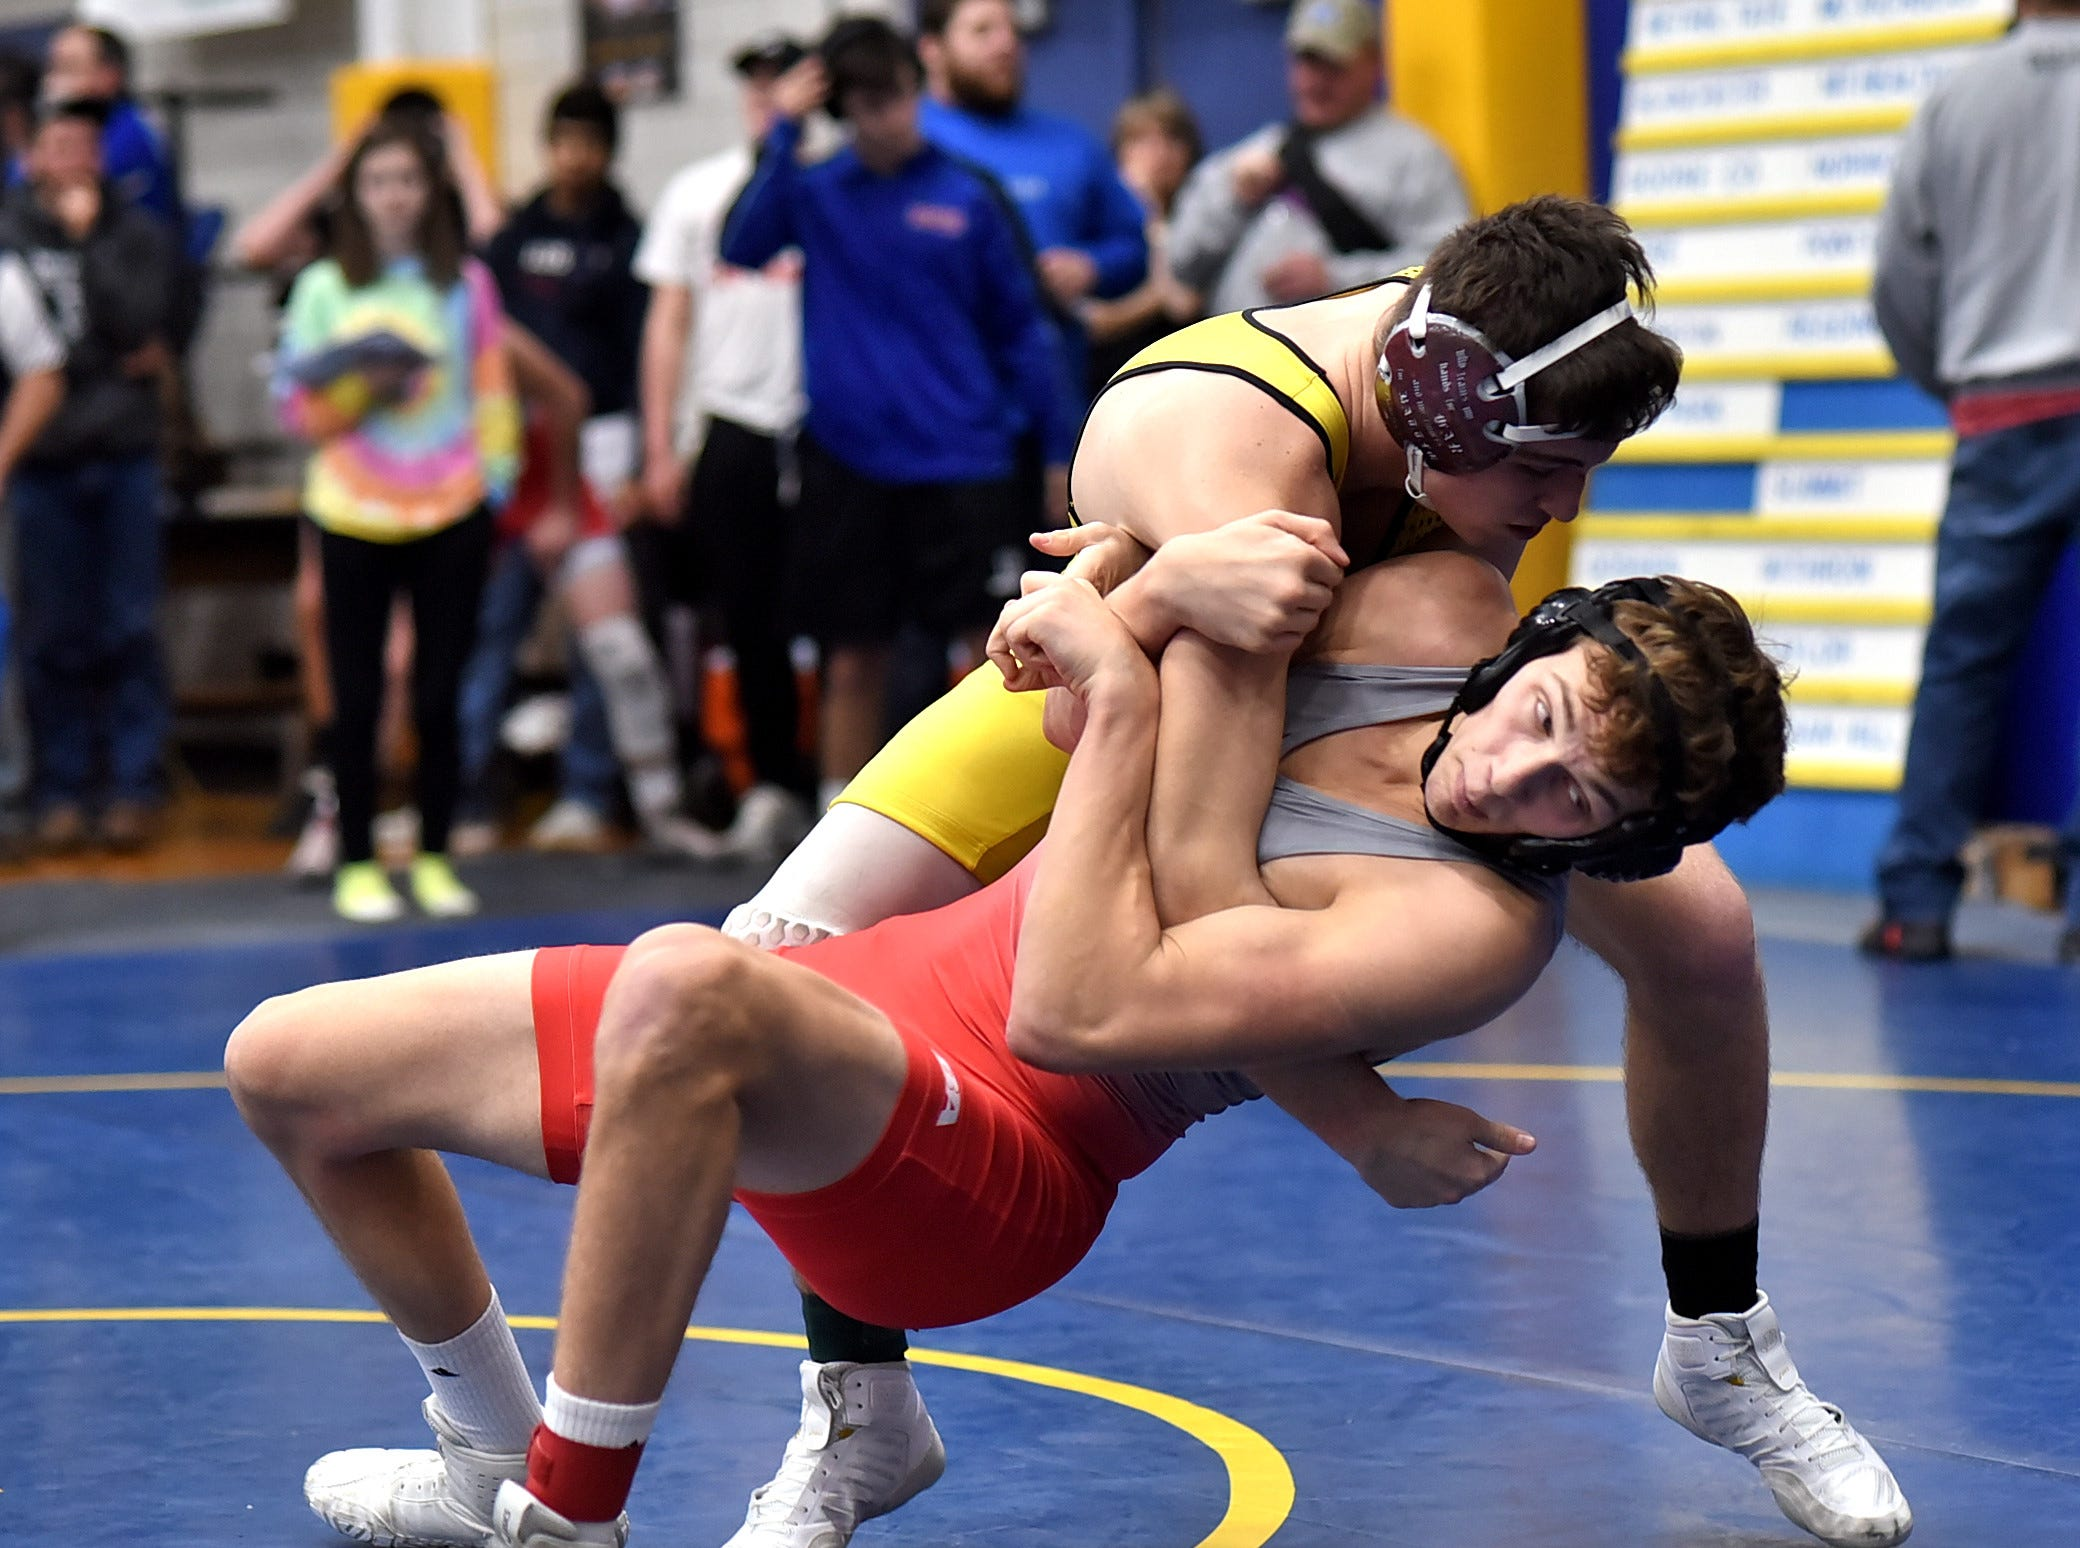 Dakotah Rider of Taylor  takes Chad Davis of Goshen to the mat in the 170 lbs. class at the Bob Kearns Madeira Invitational, January 4, 2019.